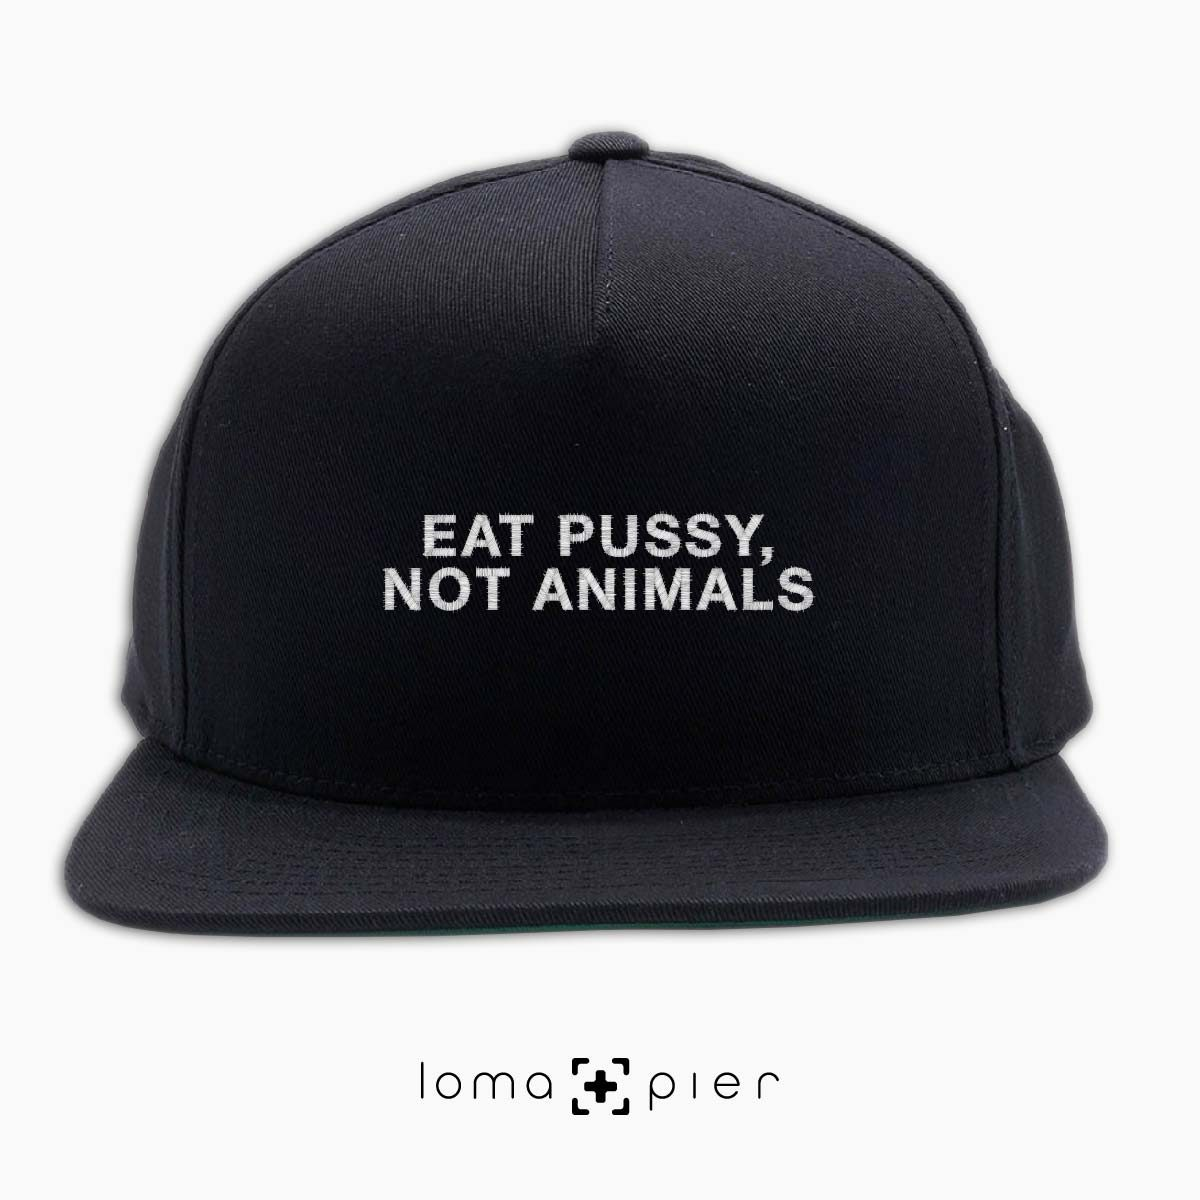 EAT PUSSY NOT ANIMALS typography embroidered on a black classic snapback hat with white thread by loma+pier hat store